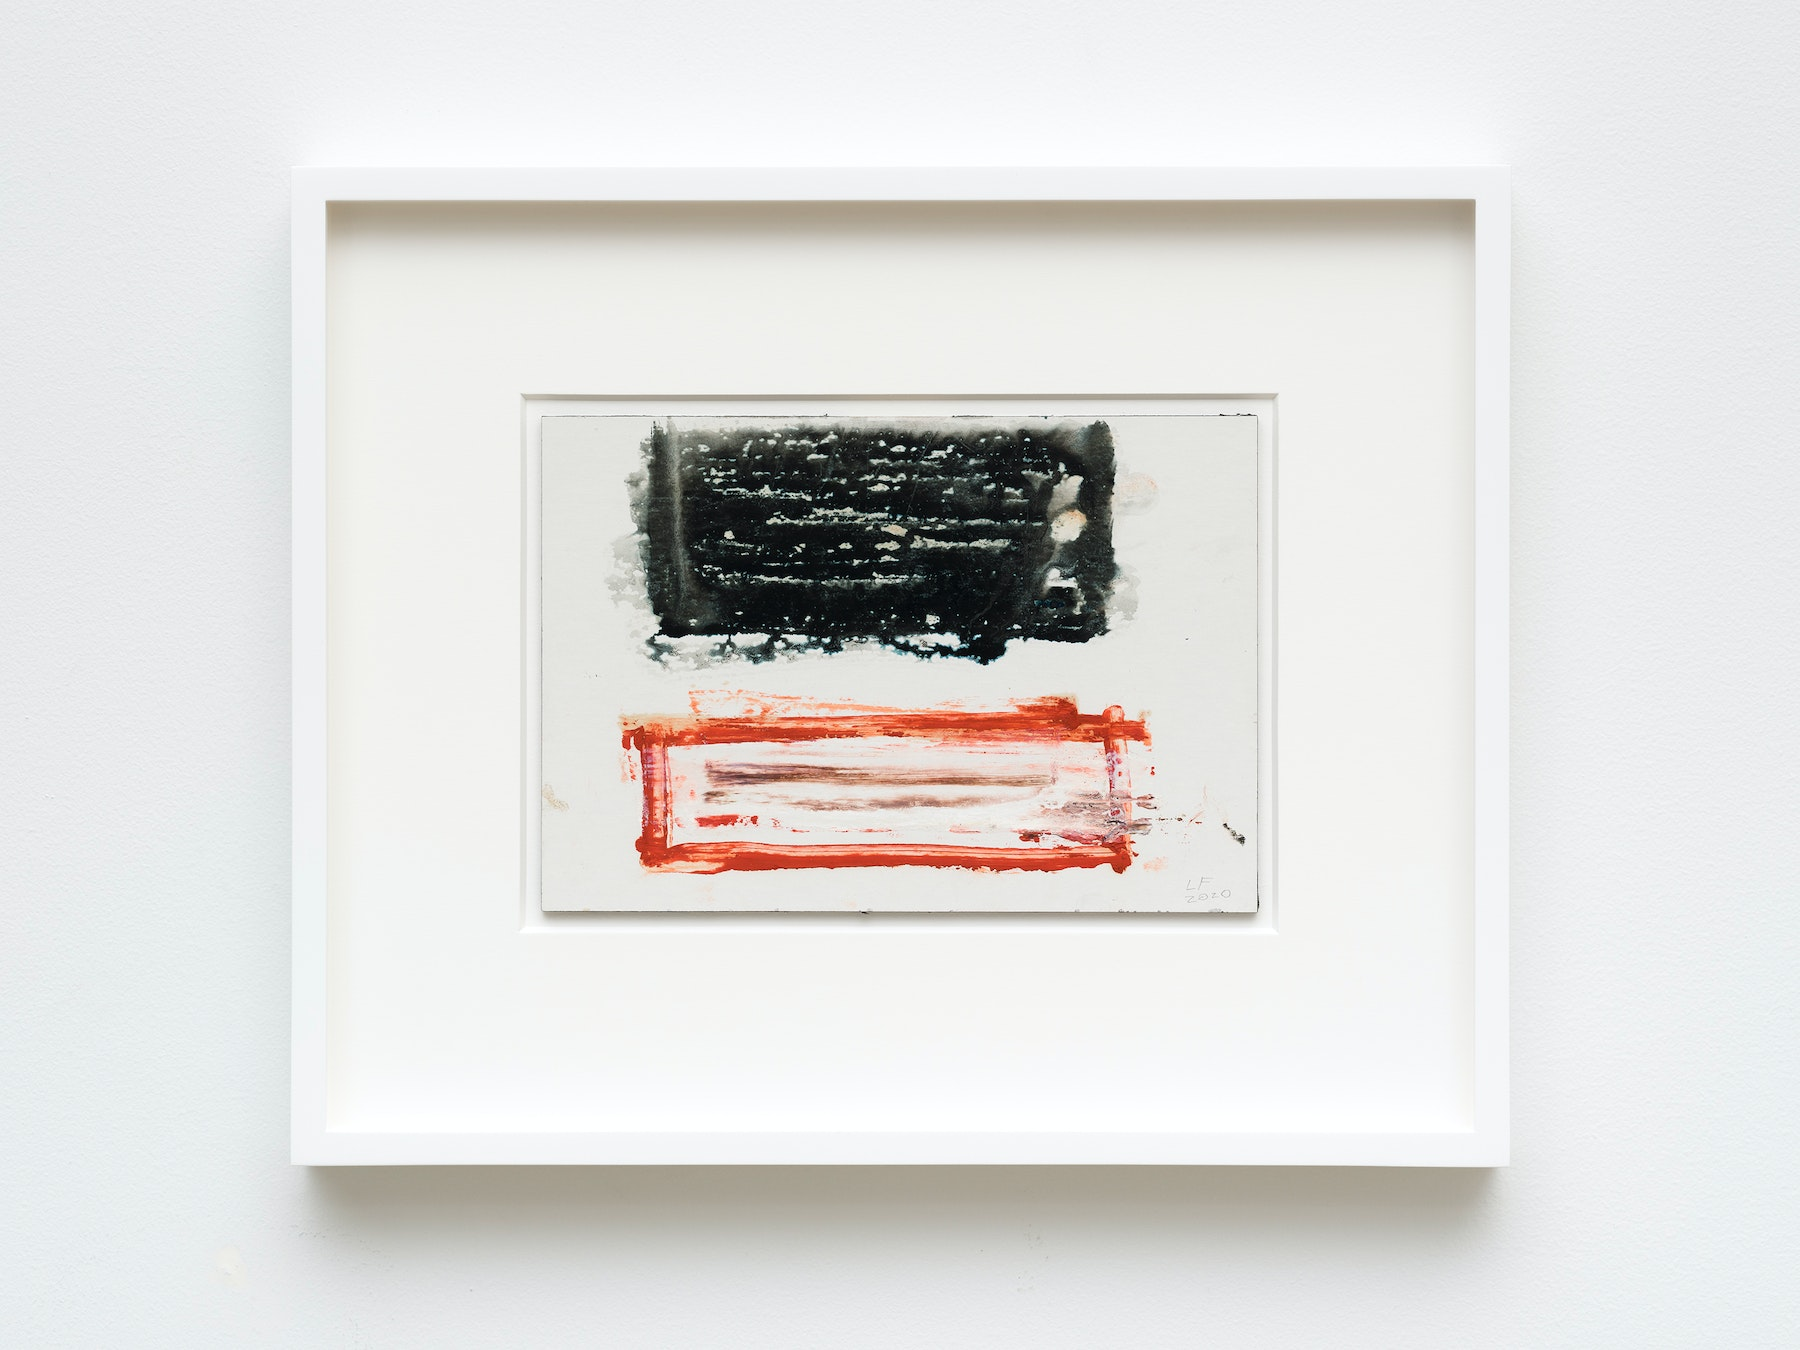 """Louise Fishman """"UNTITLED,"""" 2020 Watercolor on board 7"""" x 10"""" [HxW] (17.78 x 25.4 cm) unframed, 17 ¹⁄₄"""" x 14"""" x 1 ¹⁄₂"""" [HxWxD] (43.81 x 35.56 x 3.81 cm) framed Inventory #FIS164 Courtesy of the artist and Vielmetter Los Angeles Photo credit: Jeff Mclane"""